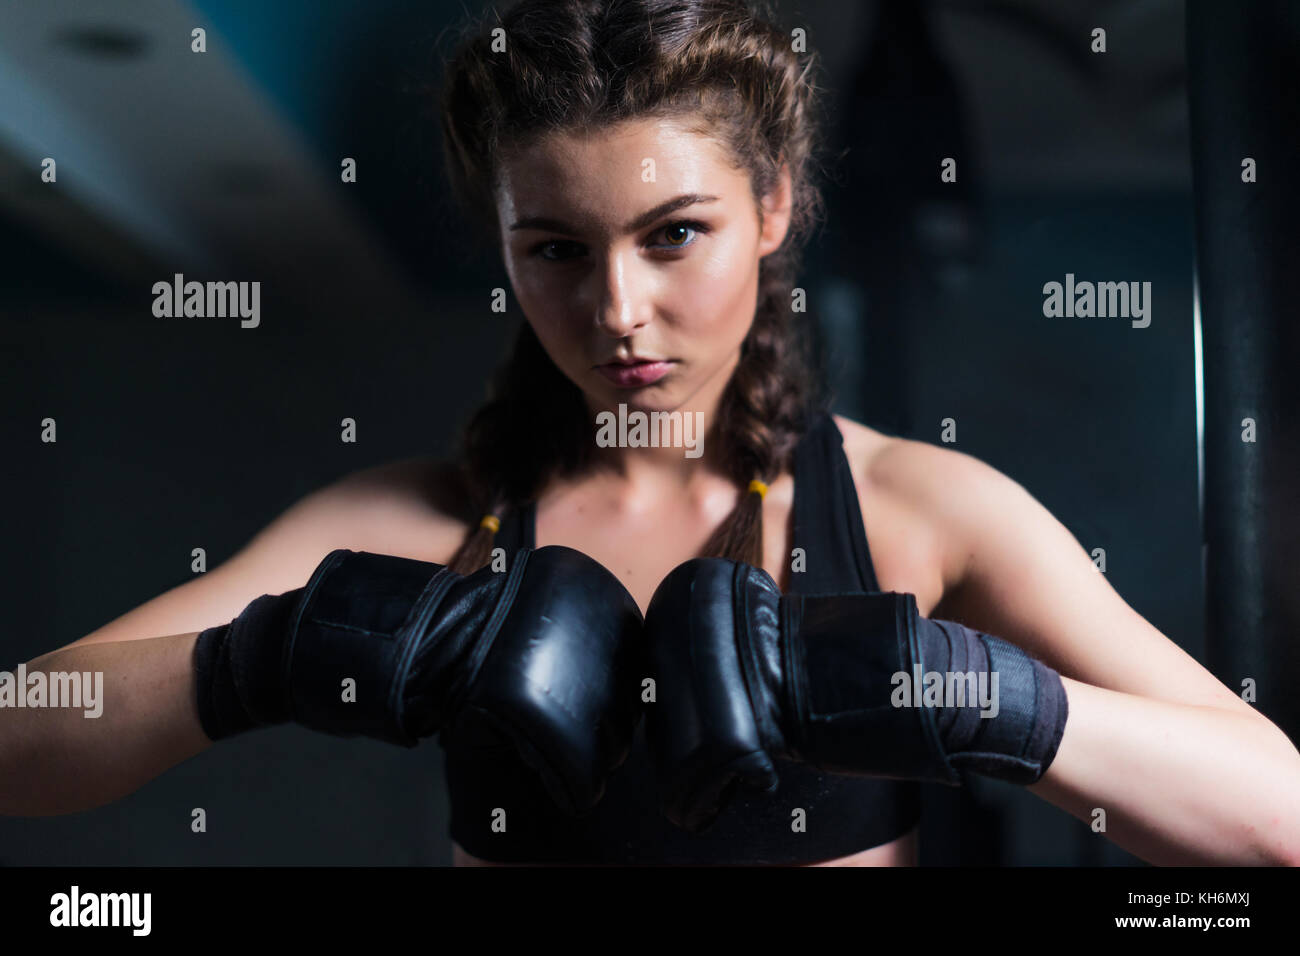 Young fighter boxer girl wearing boxing gloves before  training. - Stock Image